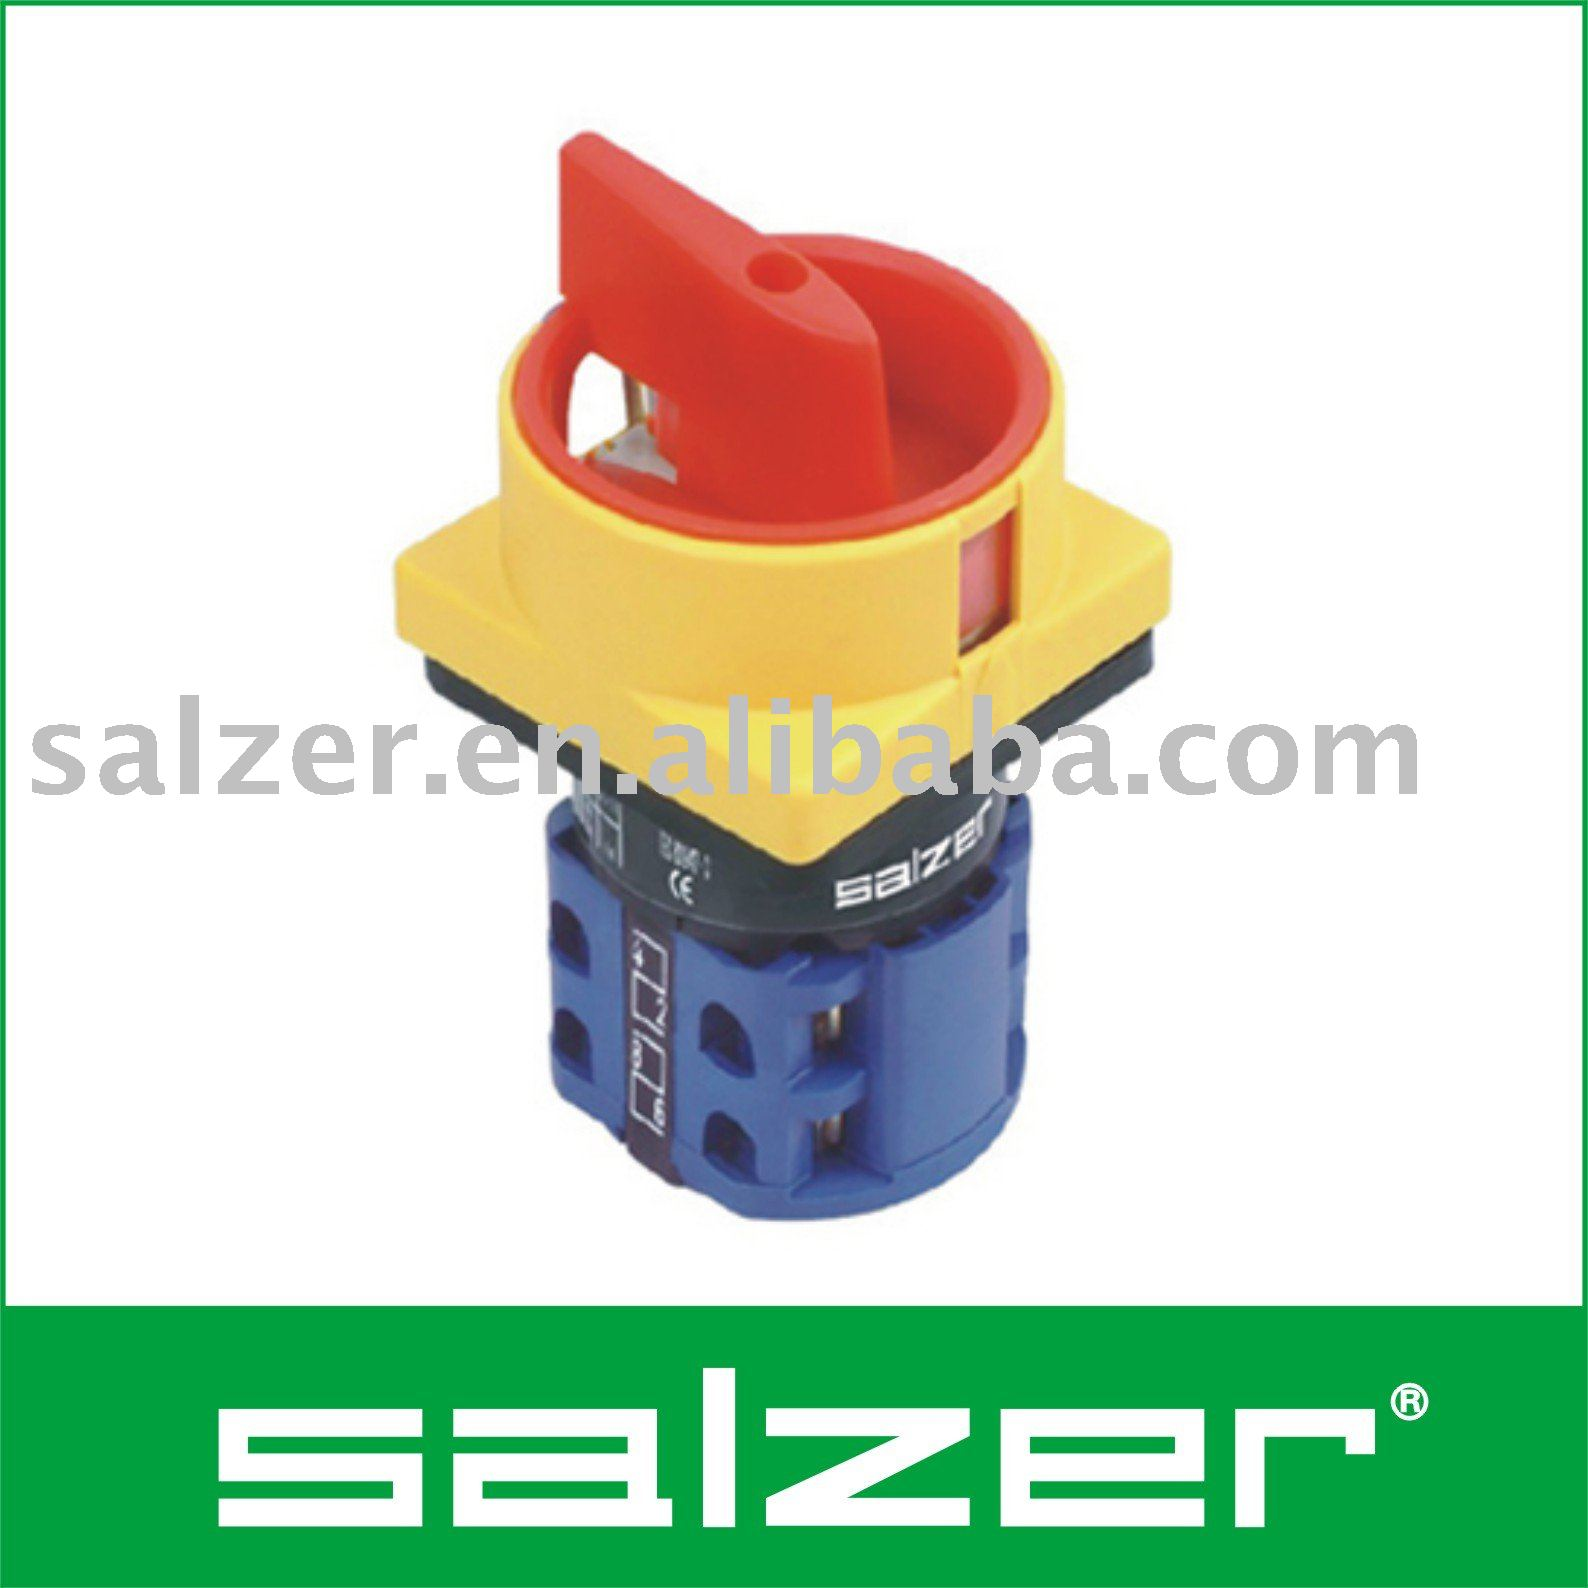 Salzer AC Isolator Switch OFF ON TUV salzer ac isolator switch off on (tuv ce cb certificate) buy salzer switches wiring diagram at gsmx.co